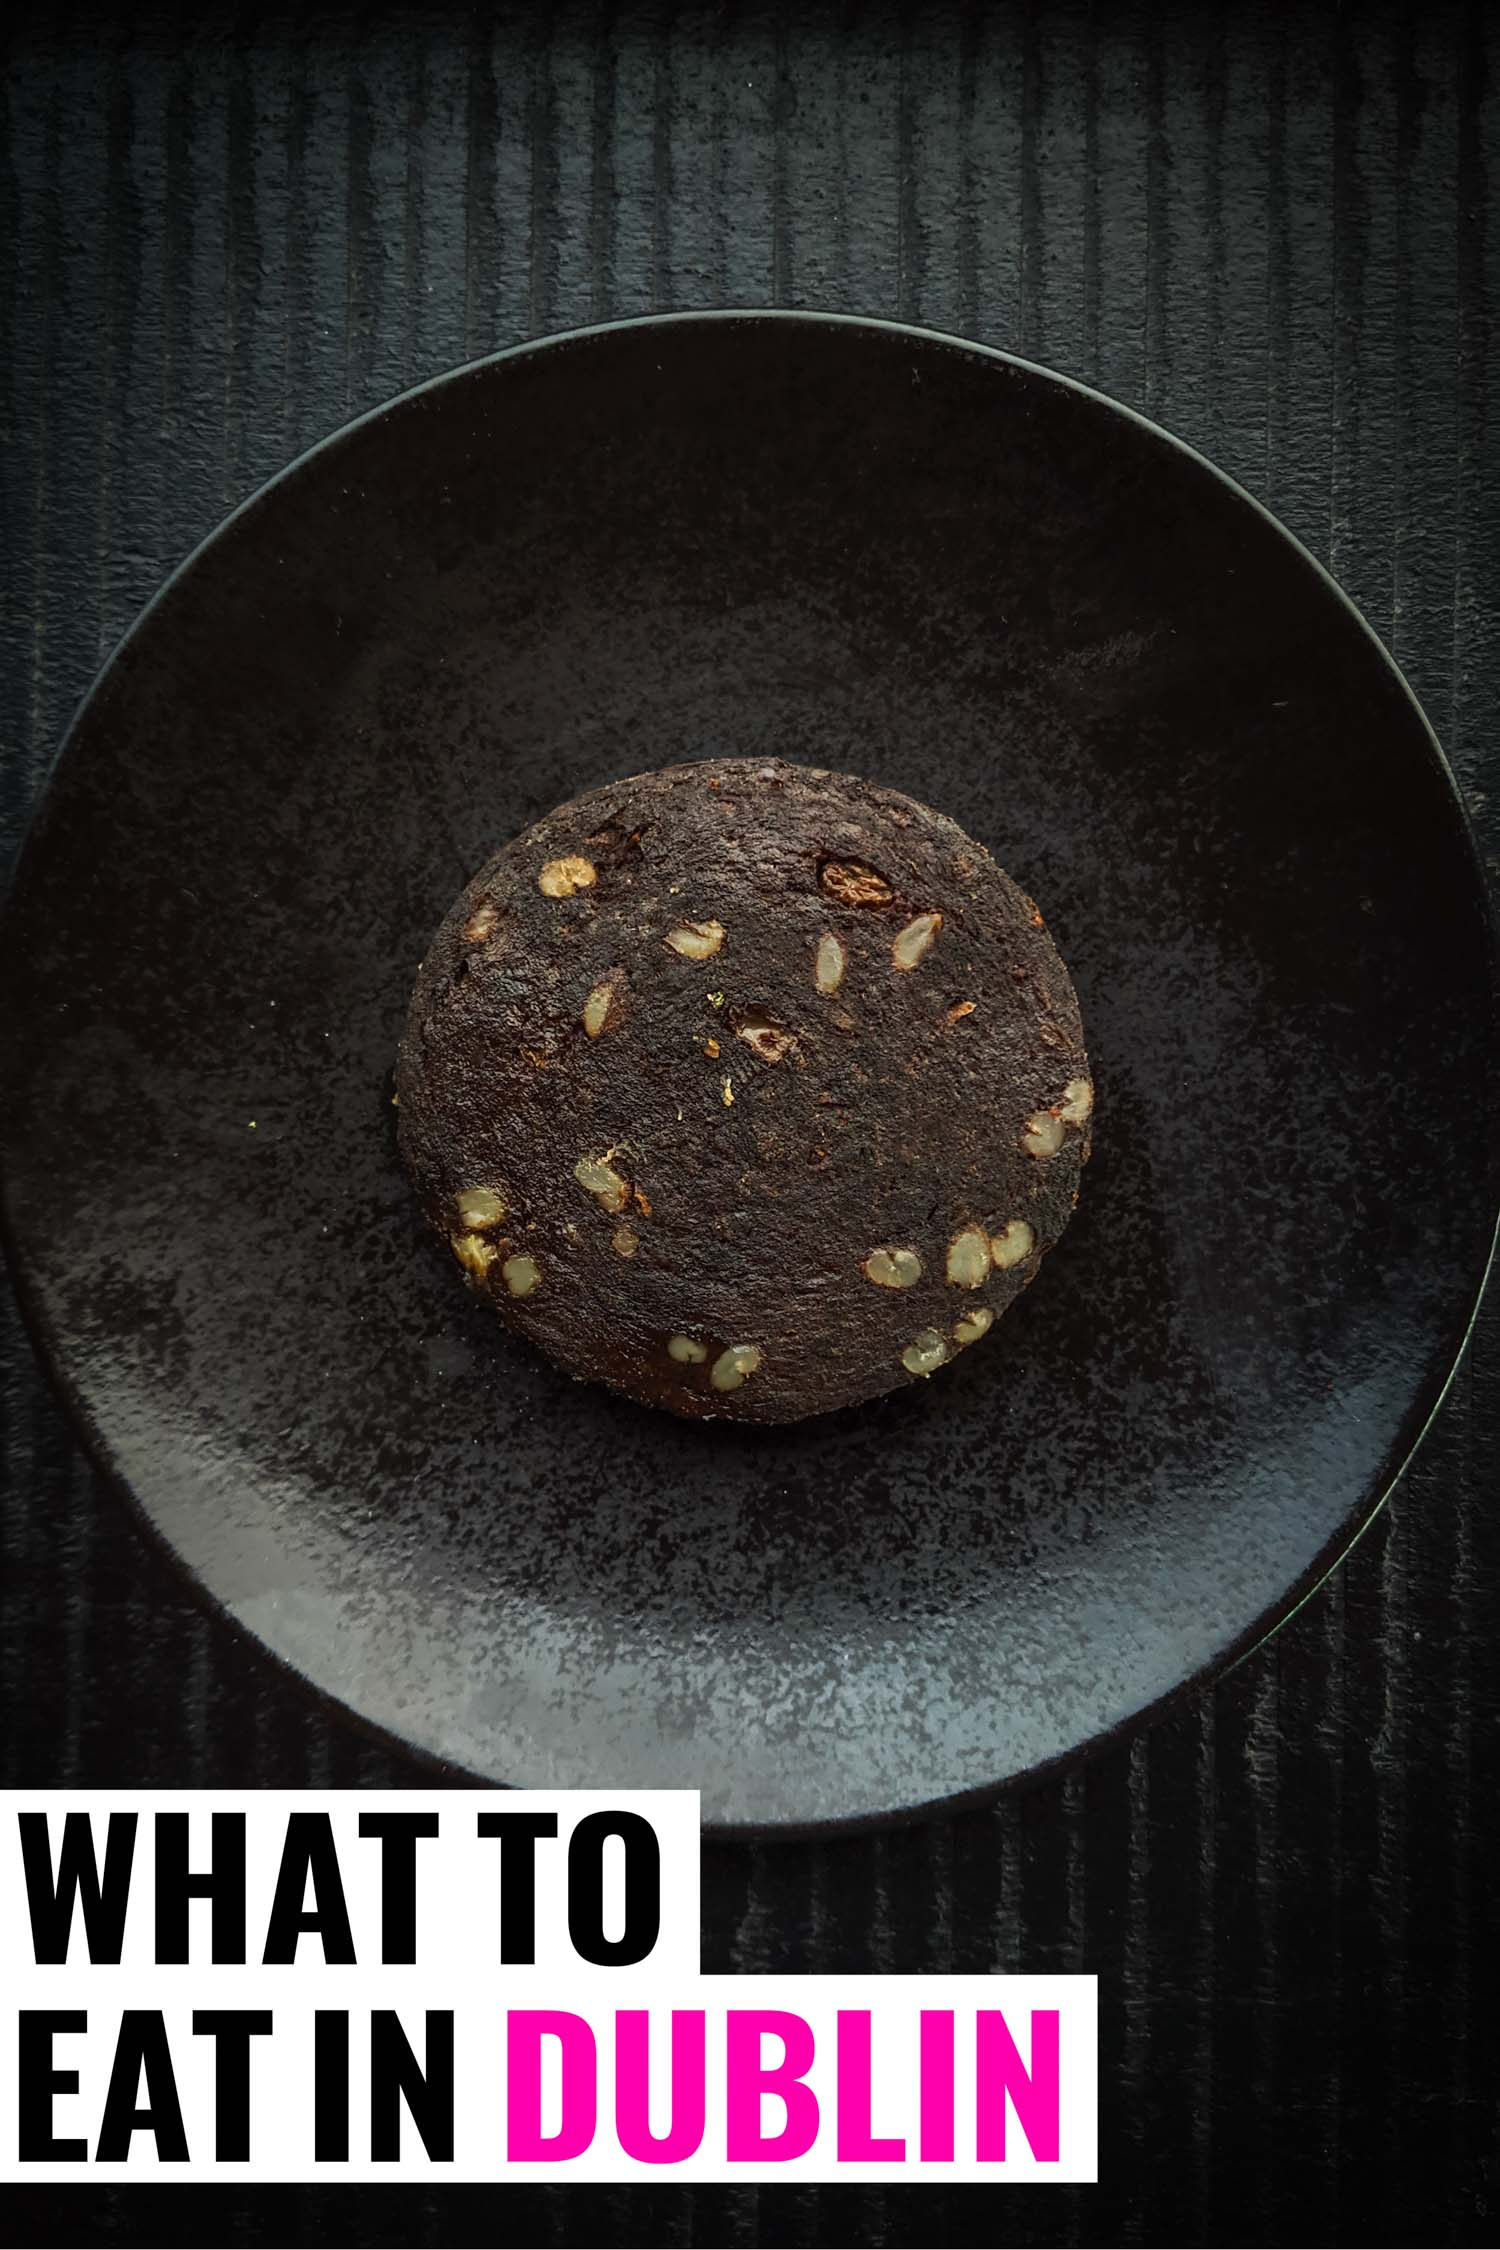 Typical Dublin food, black pudding on a black plate and background.